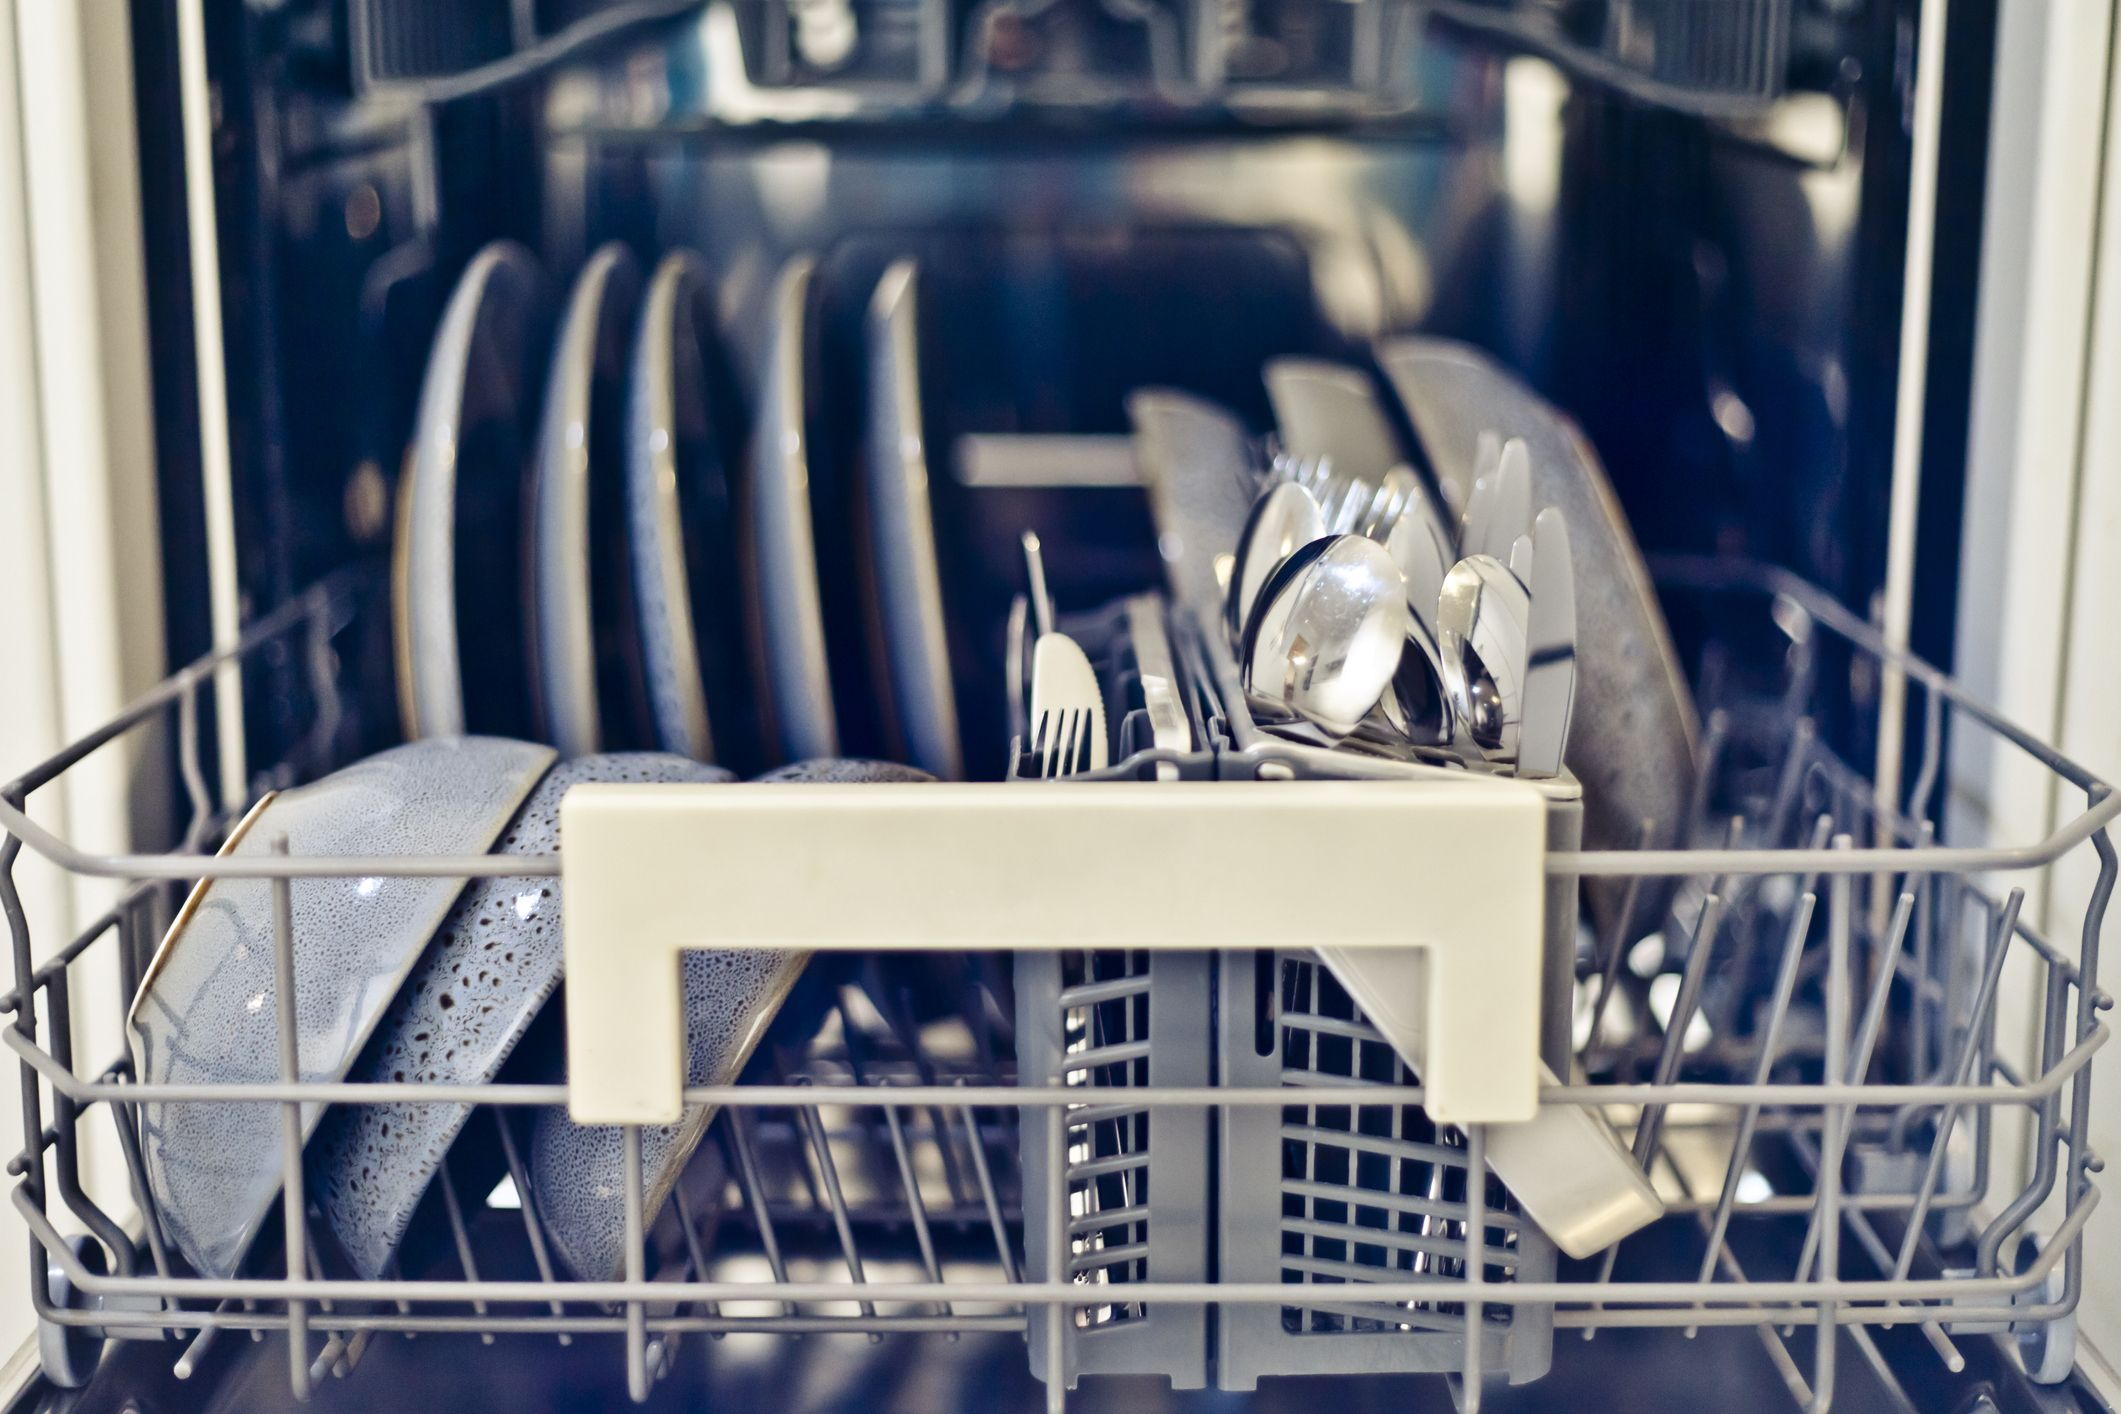 Expert reveals the correct way to load your dishwasher cutlery: should it point up or down?